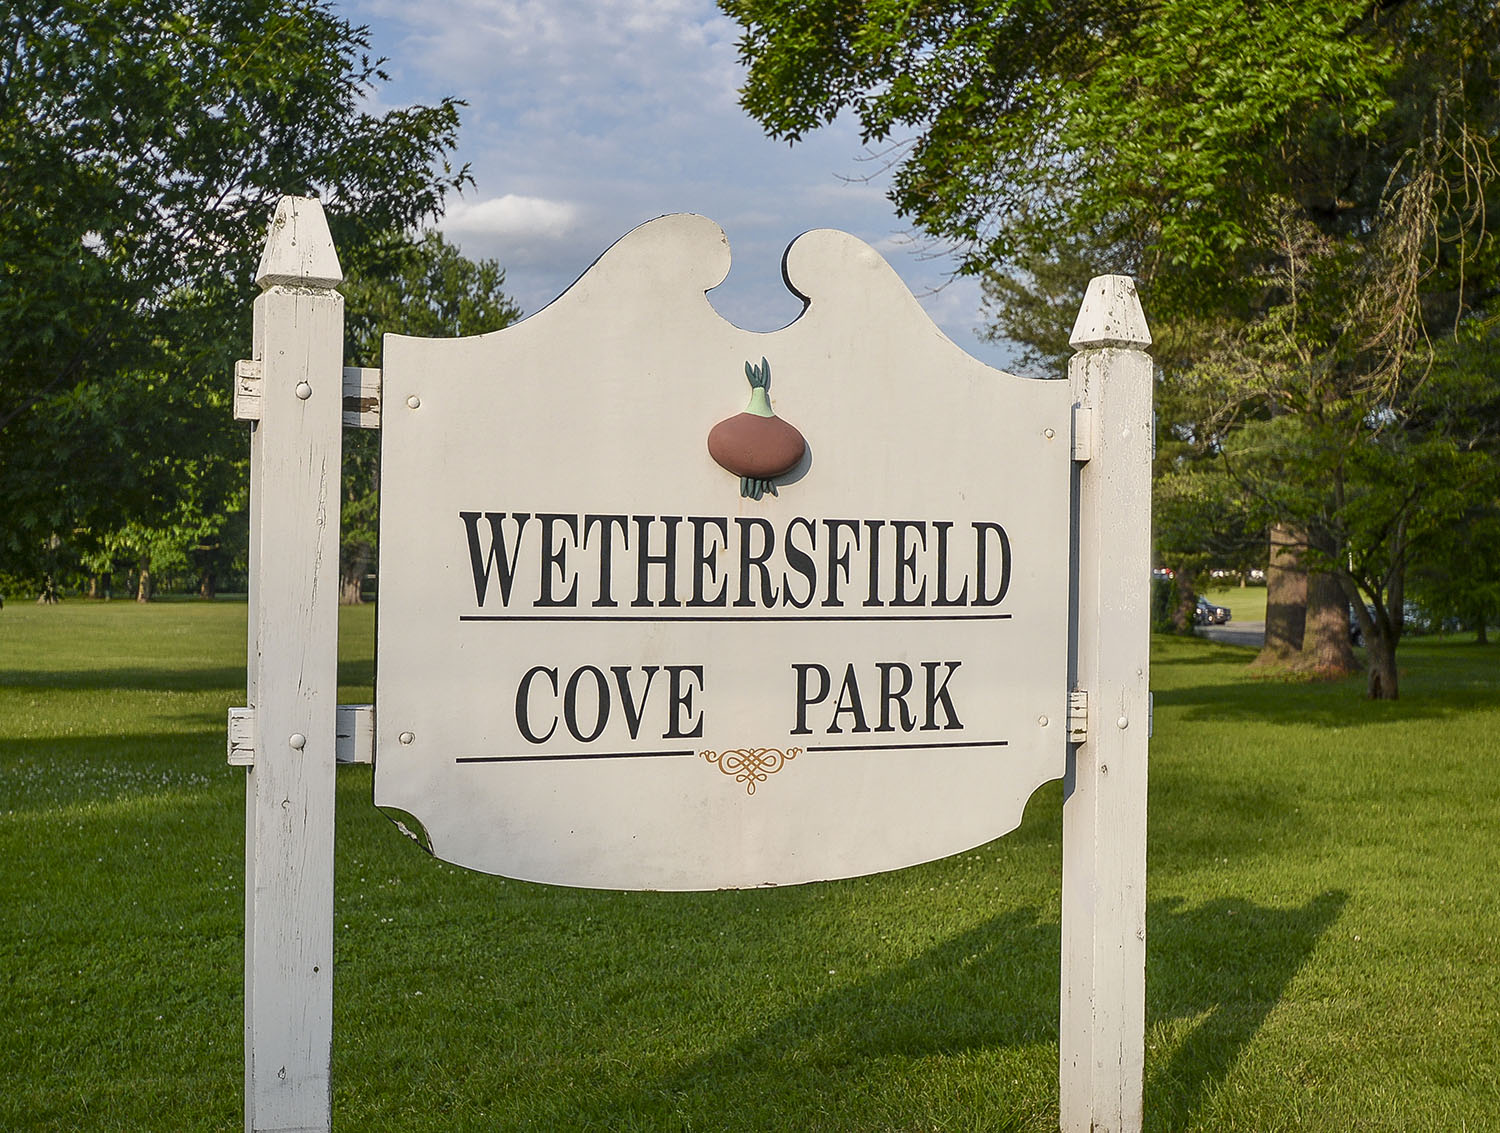 apartments near parks in wethersfield ct